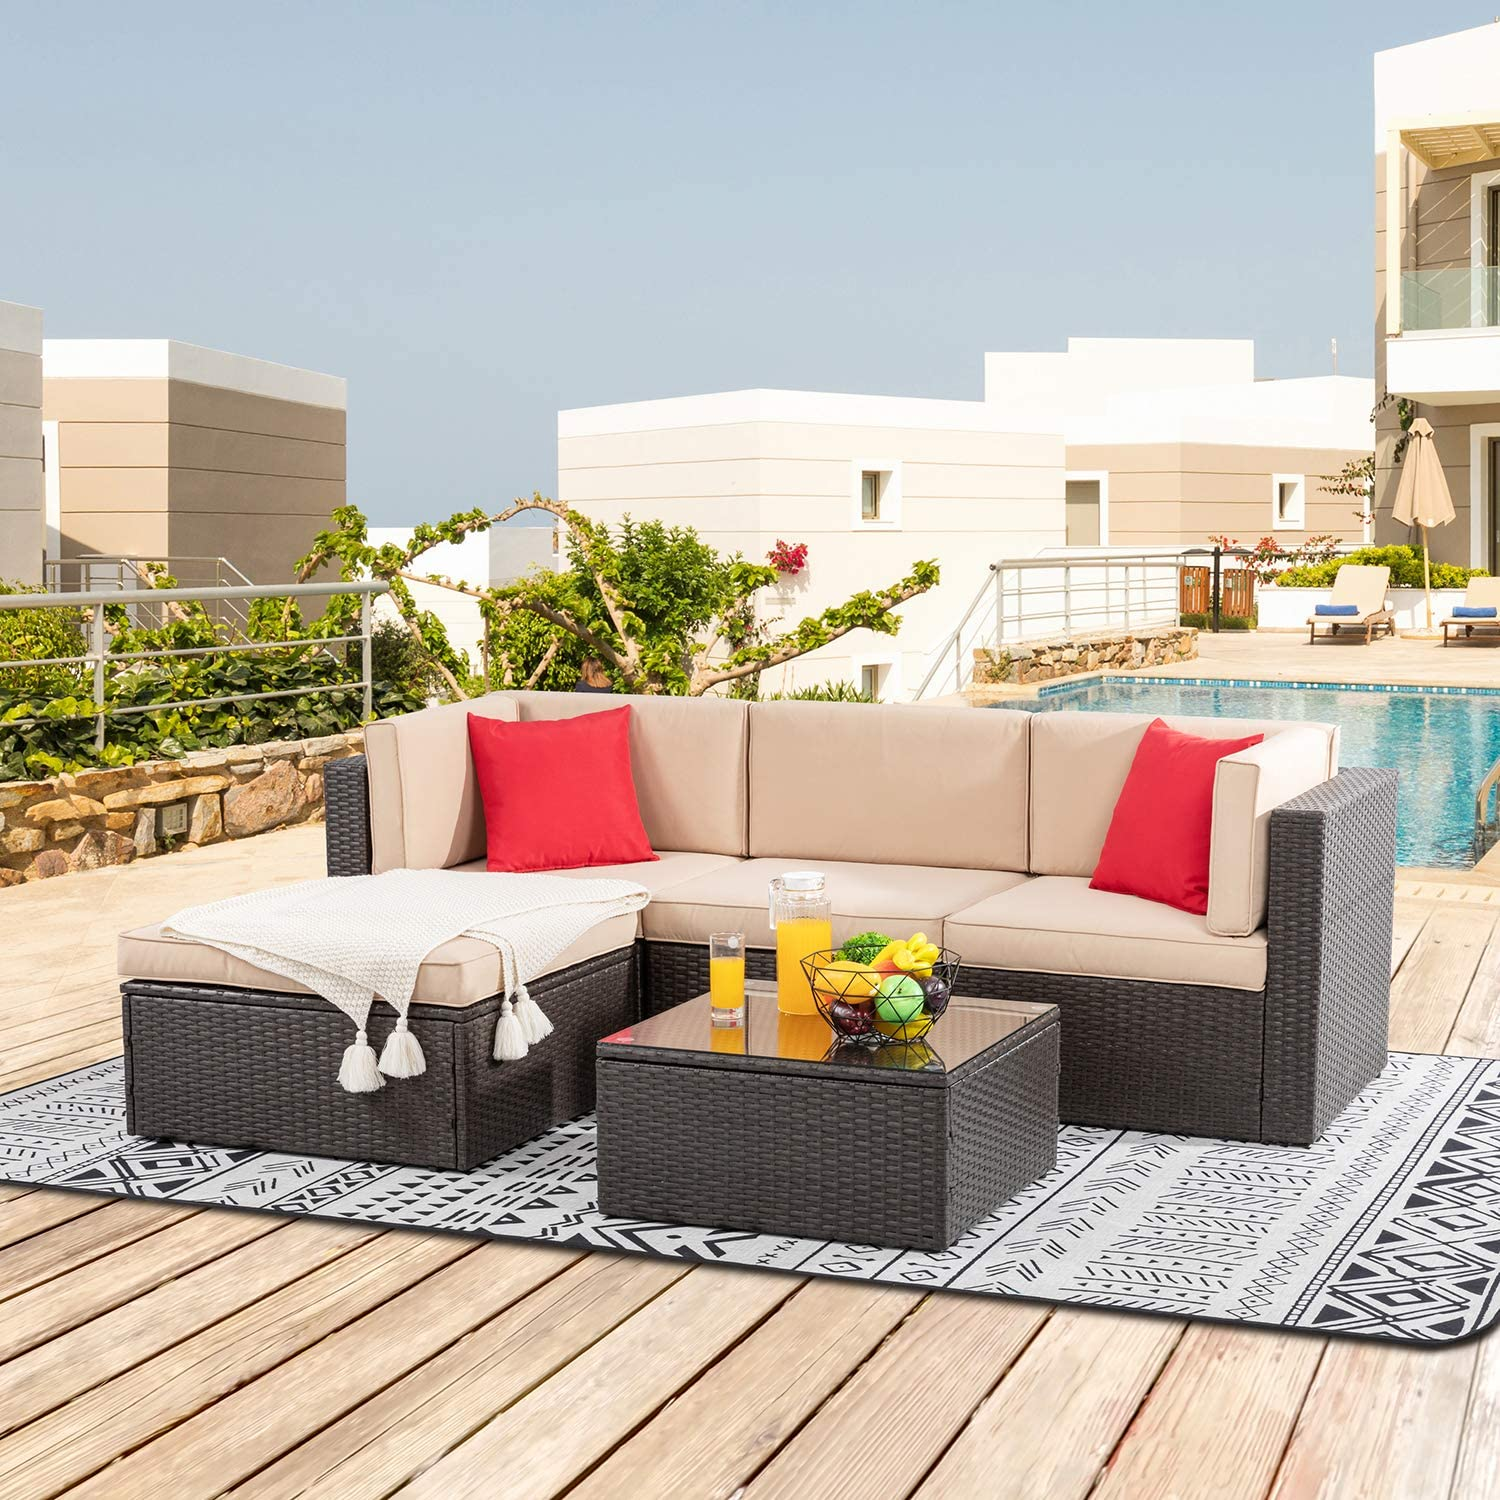 Shintenchi 5 Pieces Patio Furniture Sets Outdoor All-Weather Sectional Patio Sofa Set PE Rattan Manual Weaving Wicker Patio Conversation Set with Glass Table&Ottoman Cushion and Red Pillows (Brown)